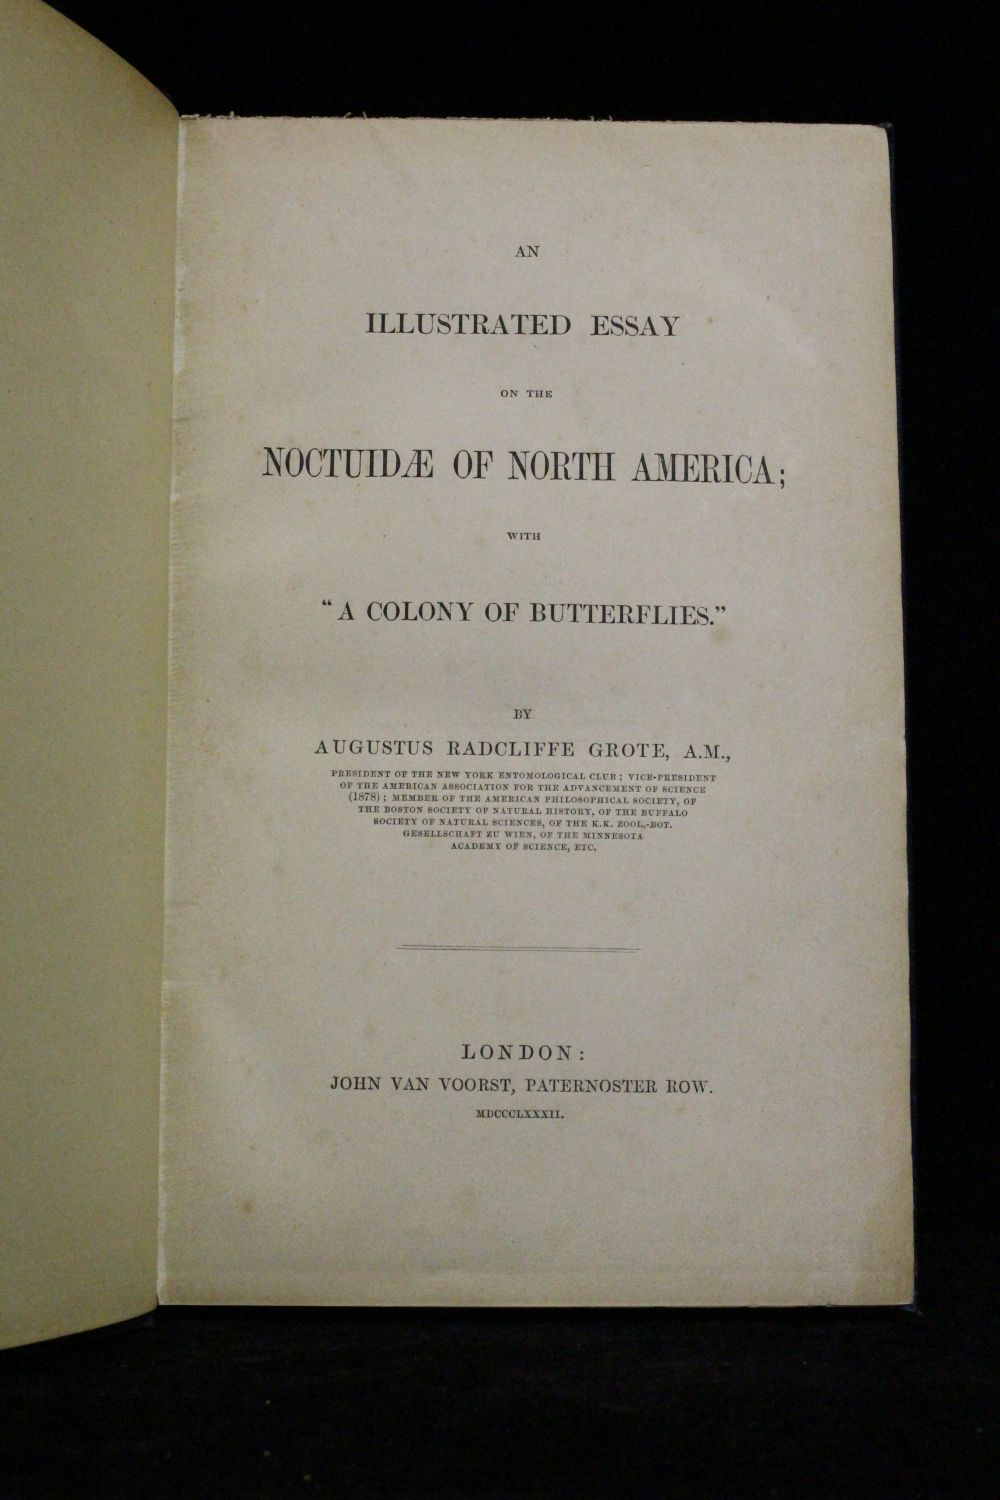 grote an illustrated essay on the noctuidae north american